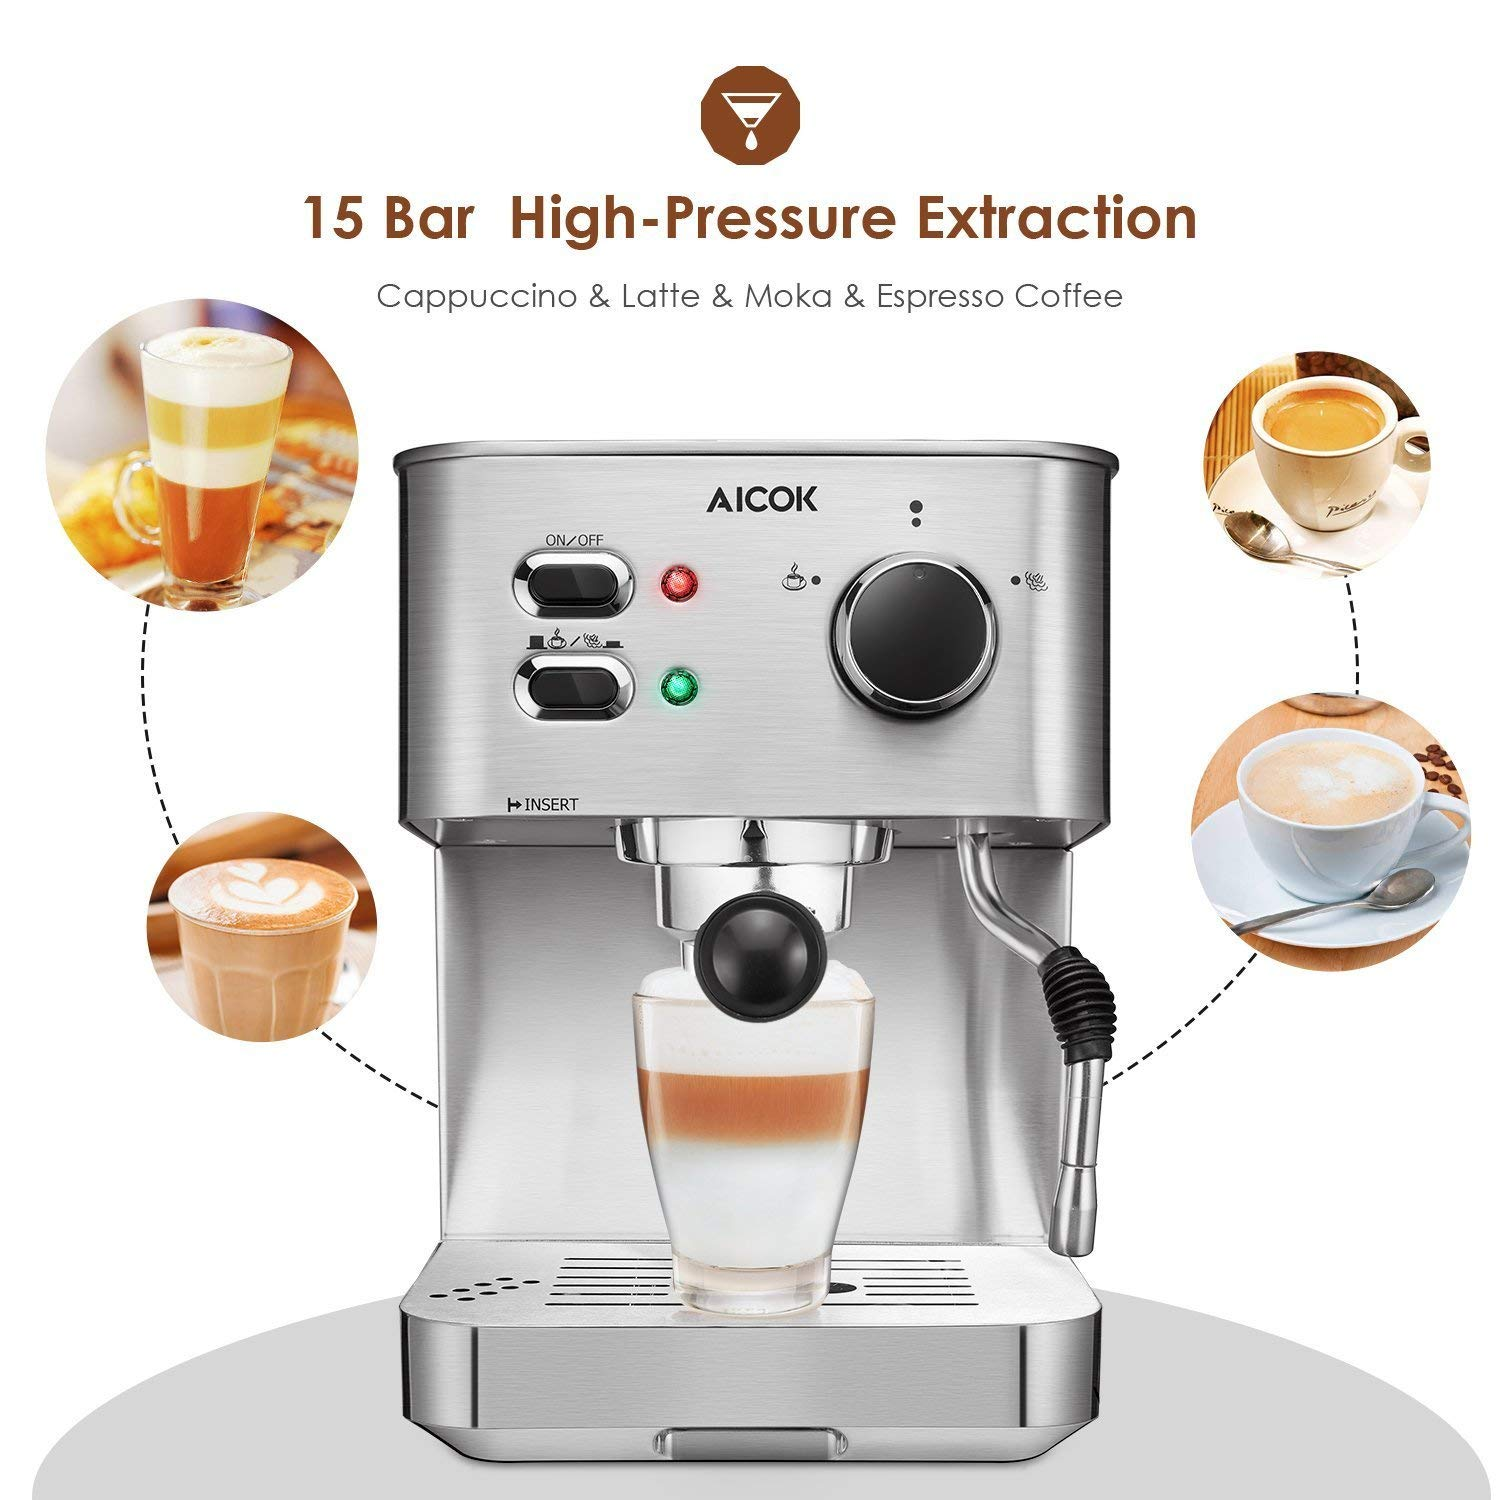 Espresso Machine, Cappuccino Coffee Maker with Milk Steamer Frother, 15 Bar Pump Latte and Moka Machine, Stainless Steel, Warm Top for Cup Placing, 1050W, by AICOK by AICOK (Image #2)